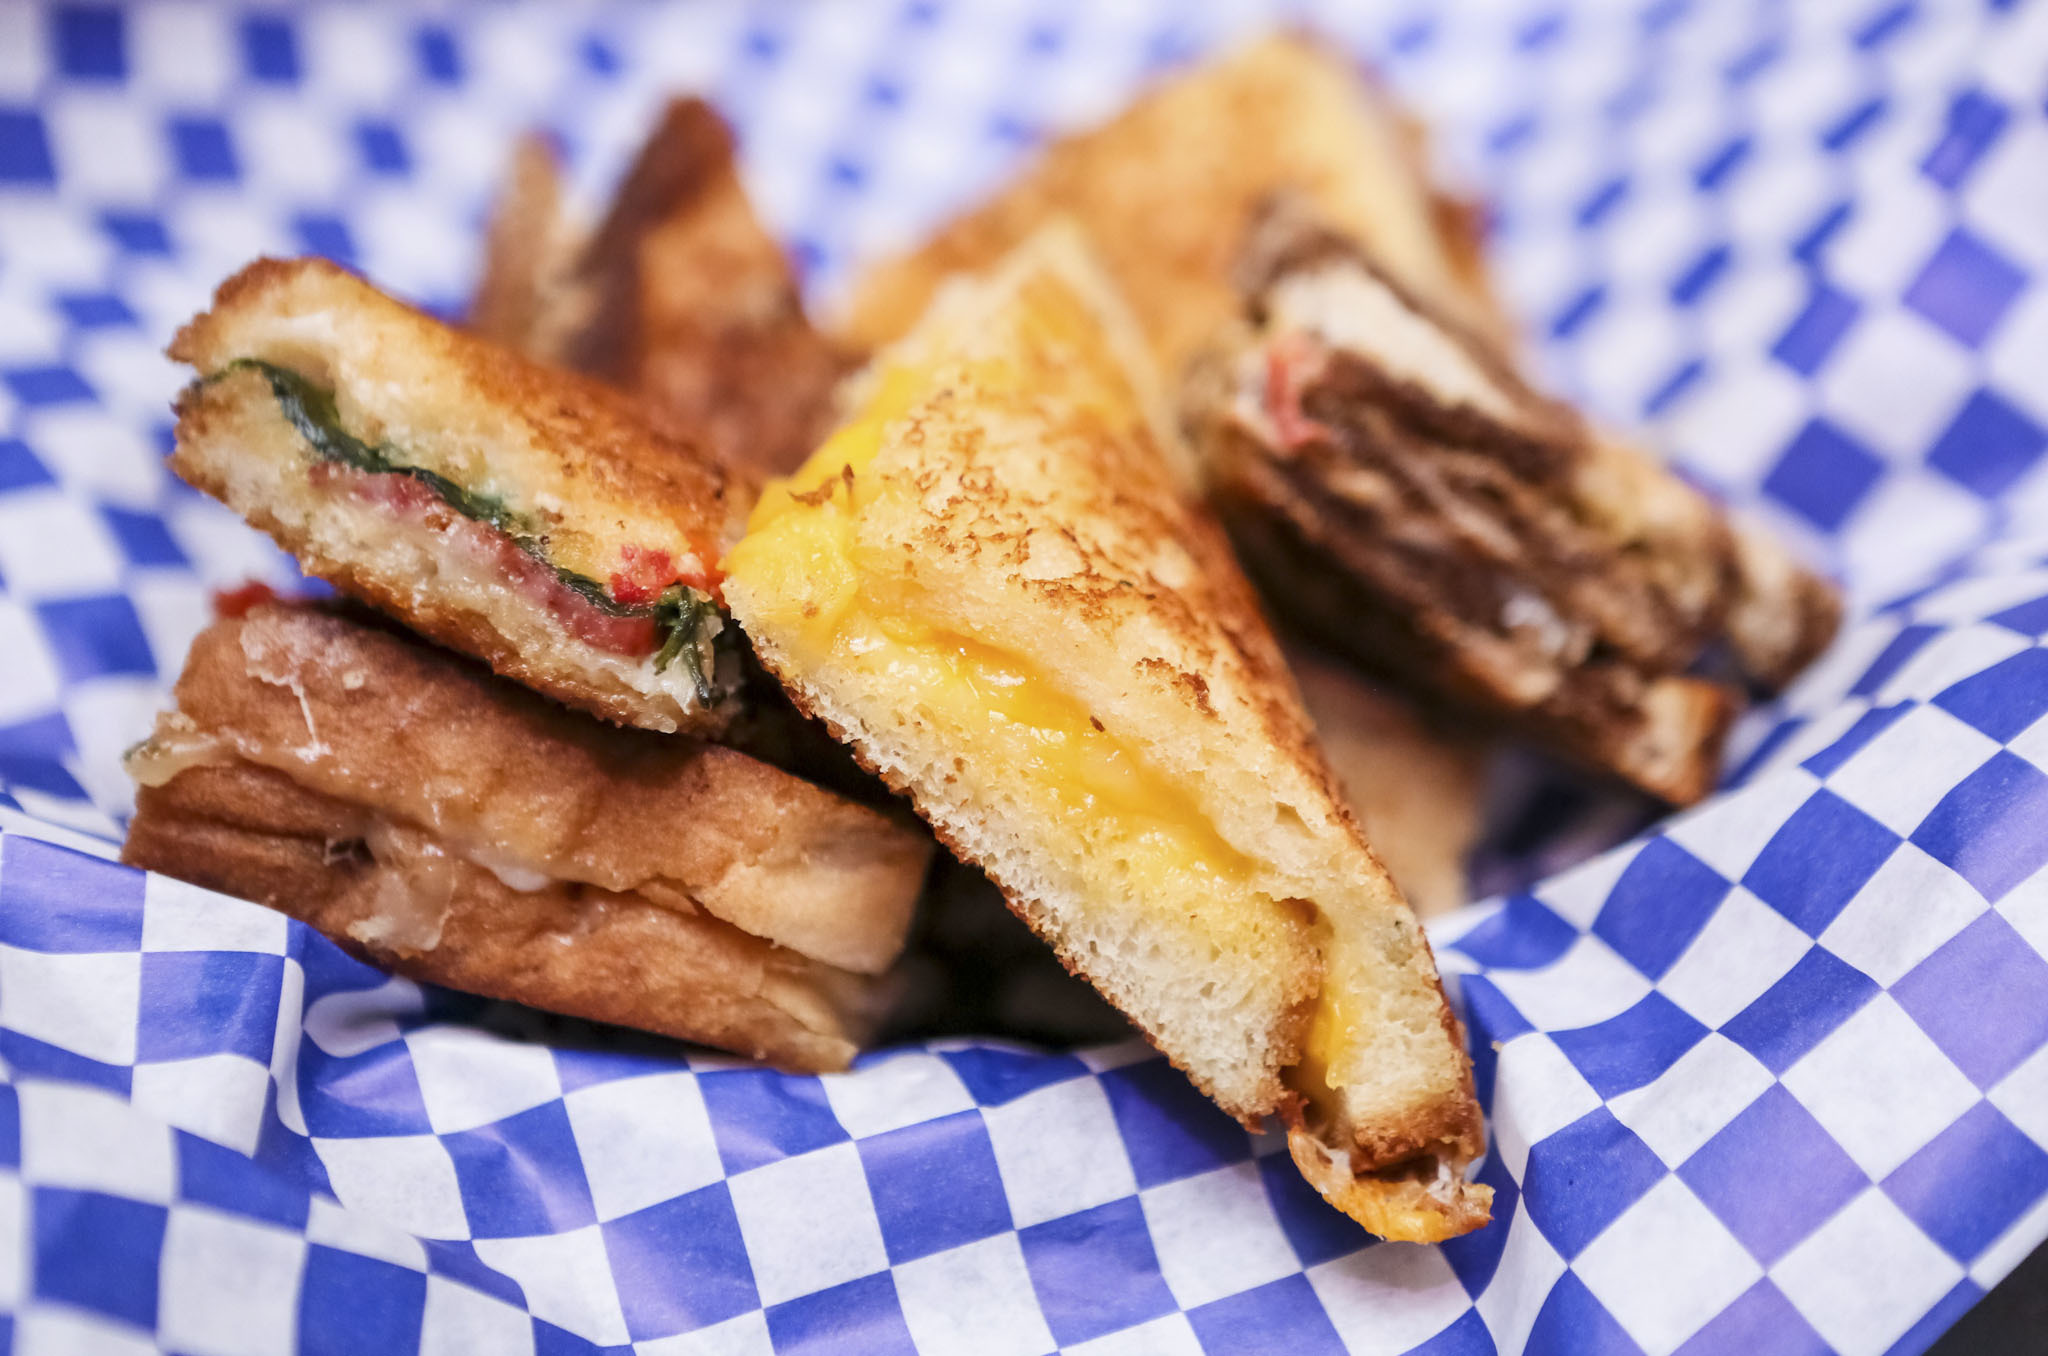 We crowned the best grilled cheese in Chicago